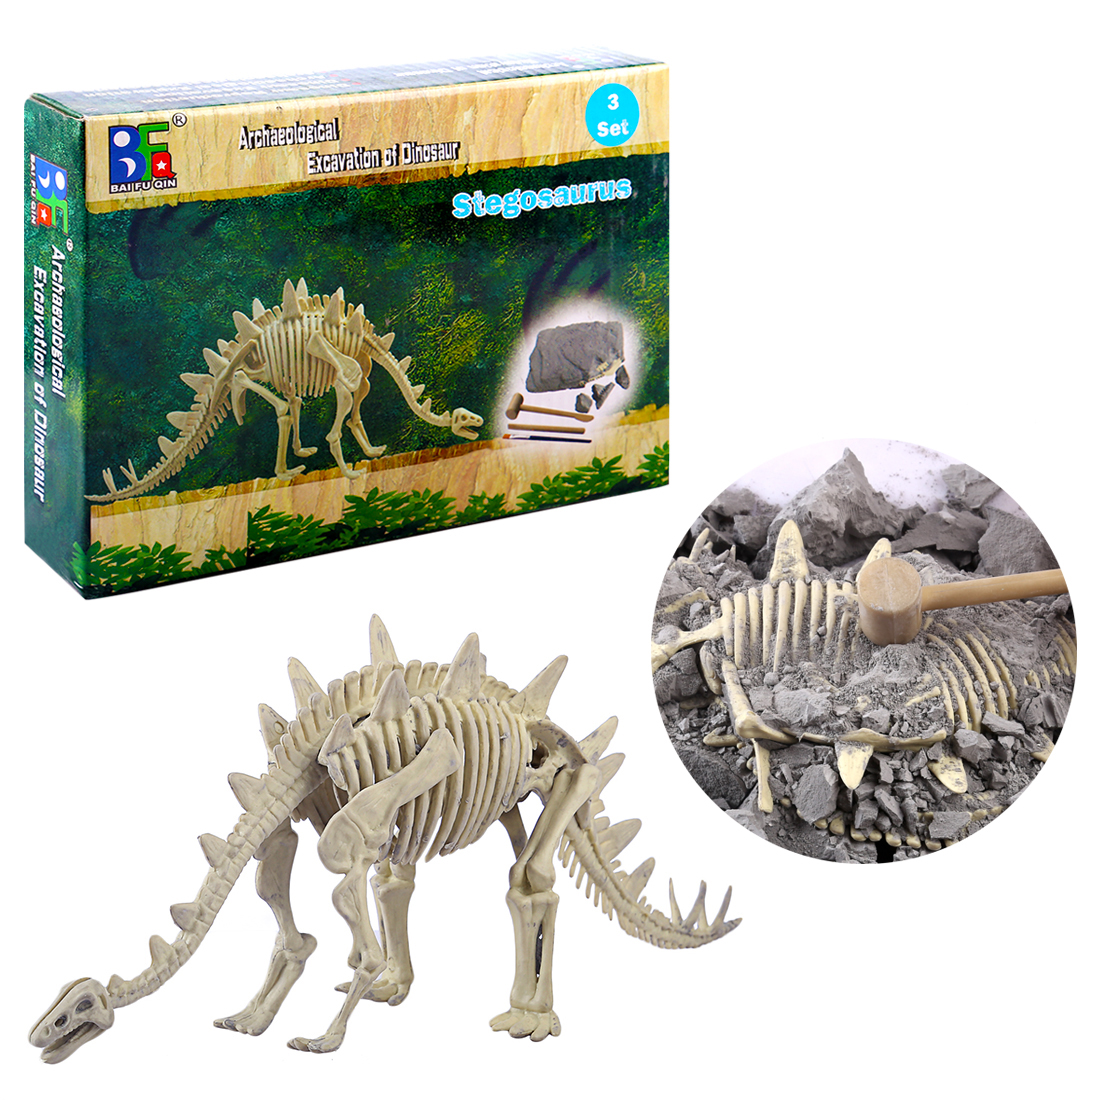 High Recommend Children Creative Educational Dinosaur Archaeology Excavation Toys For Kids Hand Operating Science Tools Toy